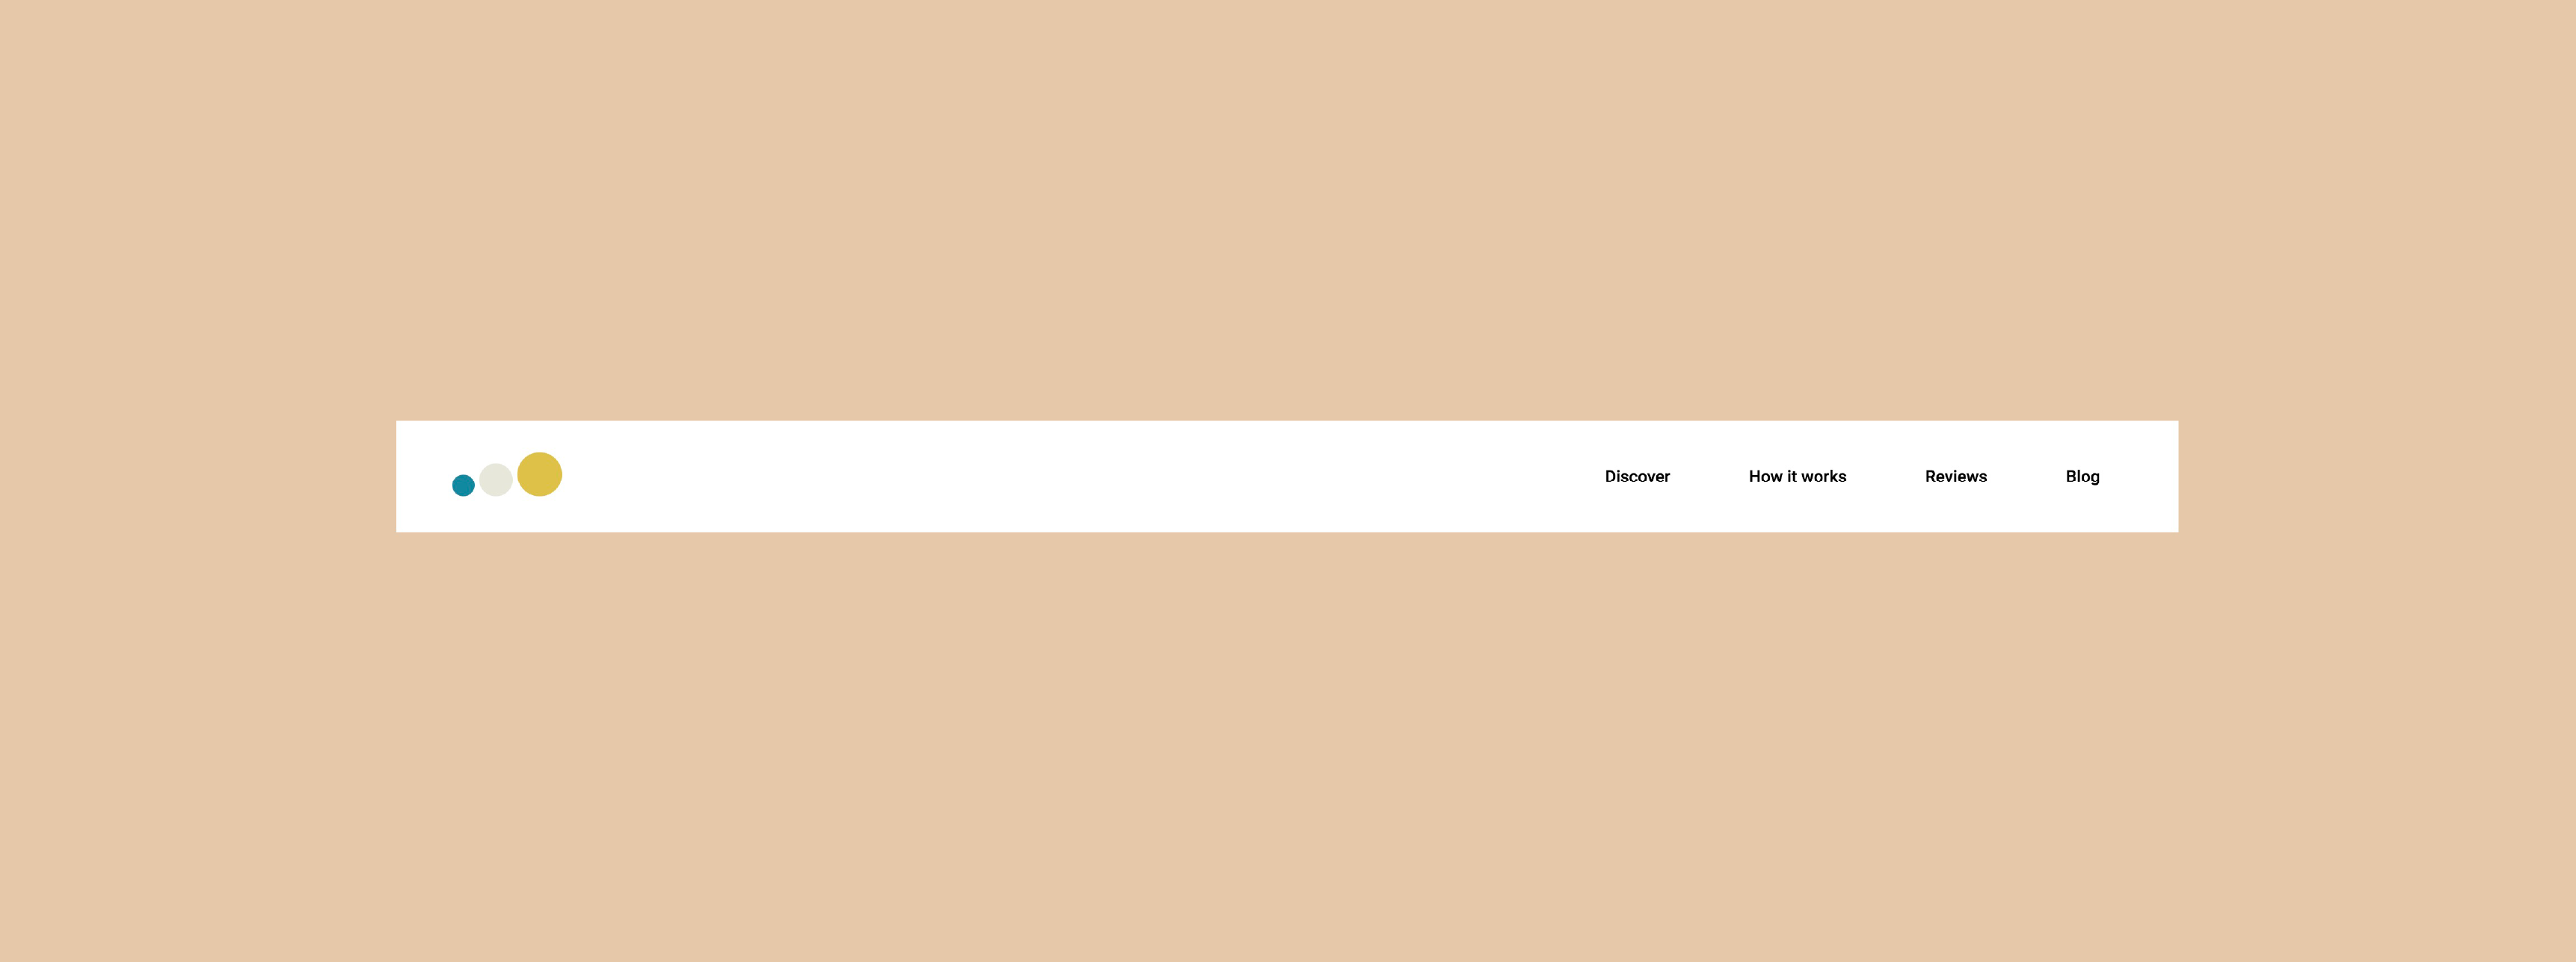 How To Create A Basic Responsive Navigation Bar By Erica N The Startup Medium